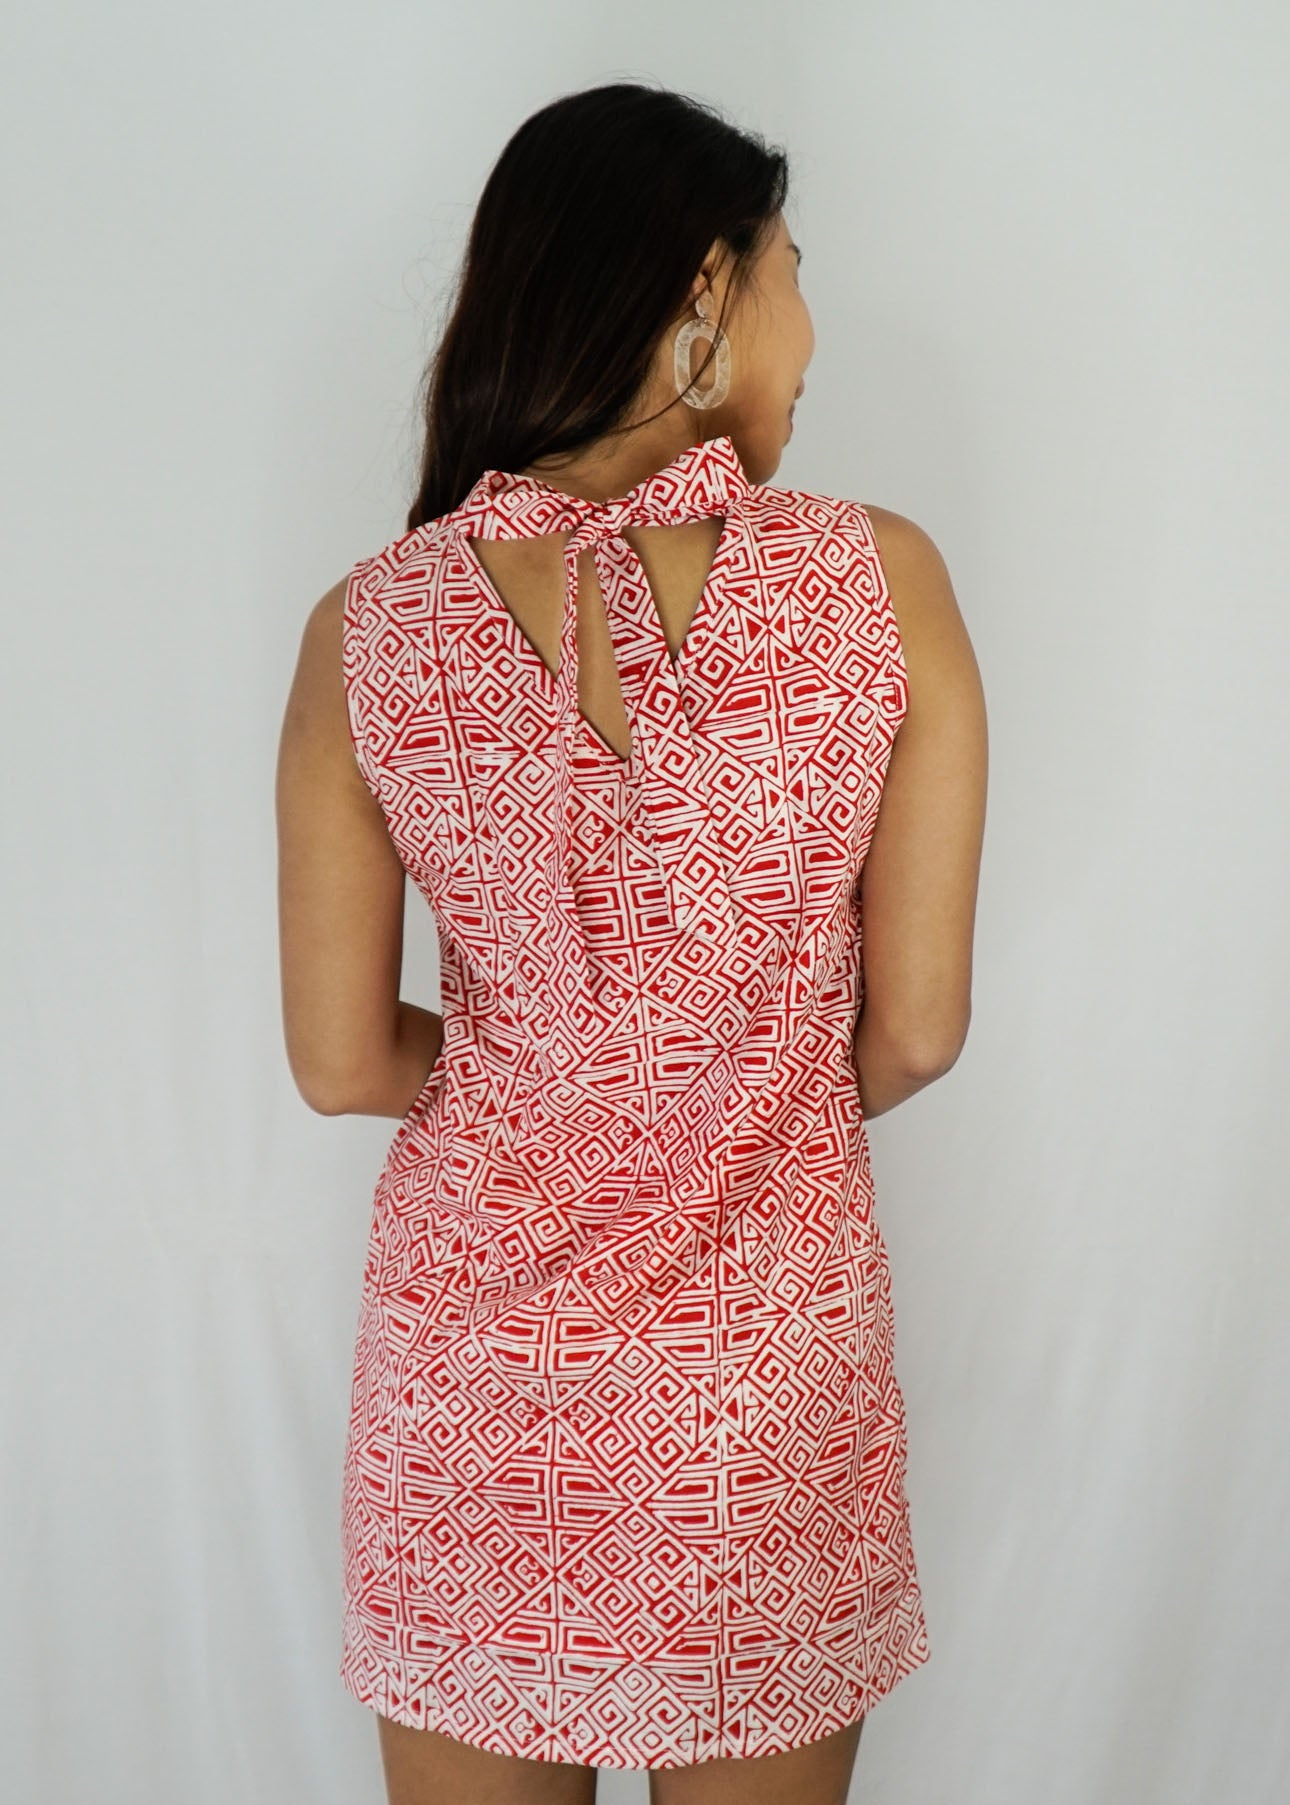 Joli Ribbon Tie-Back Dress in Geometric Red